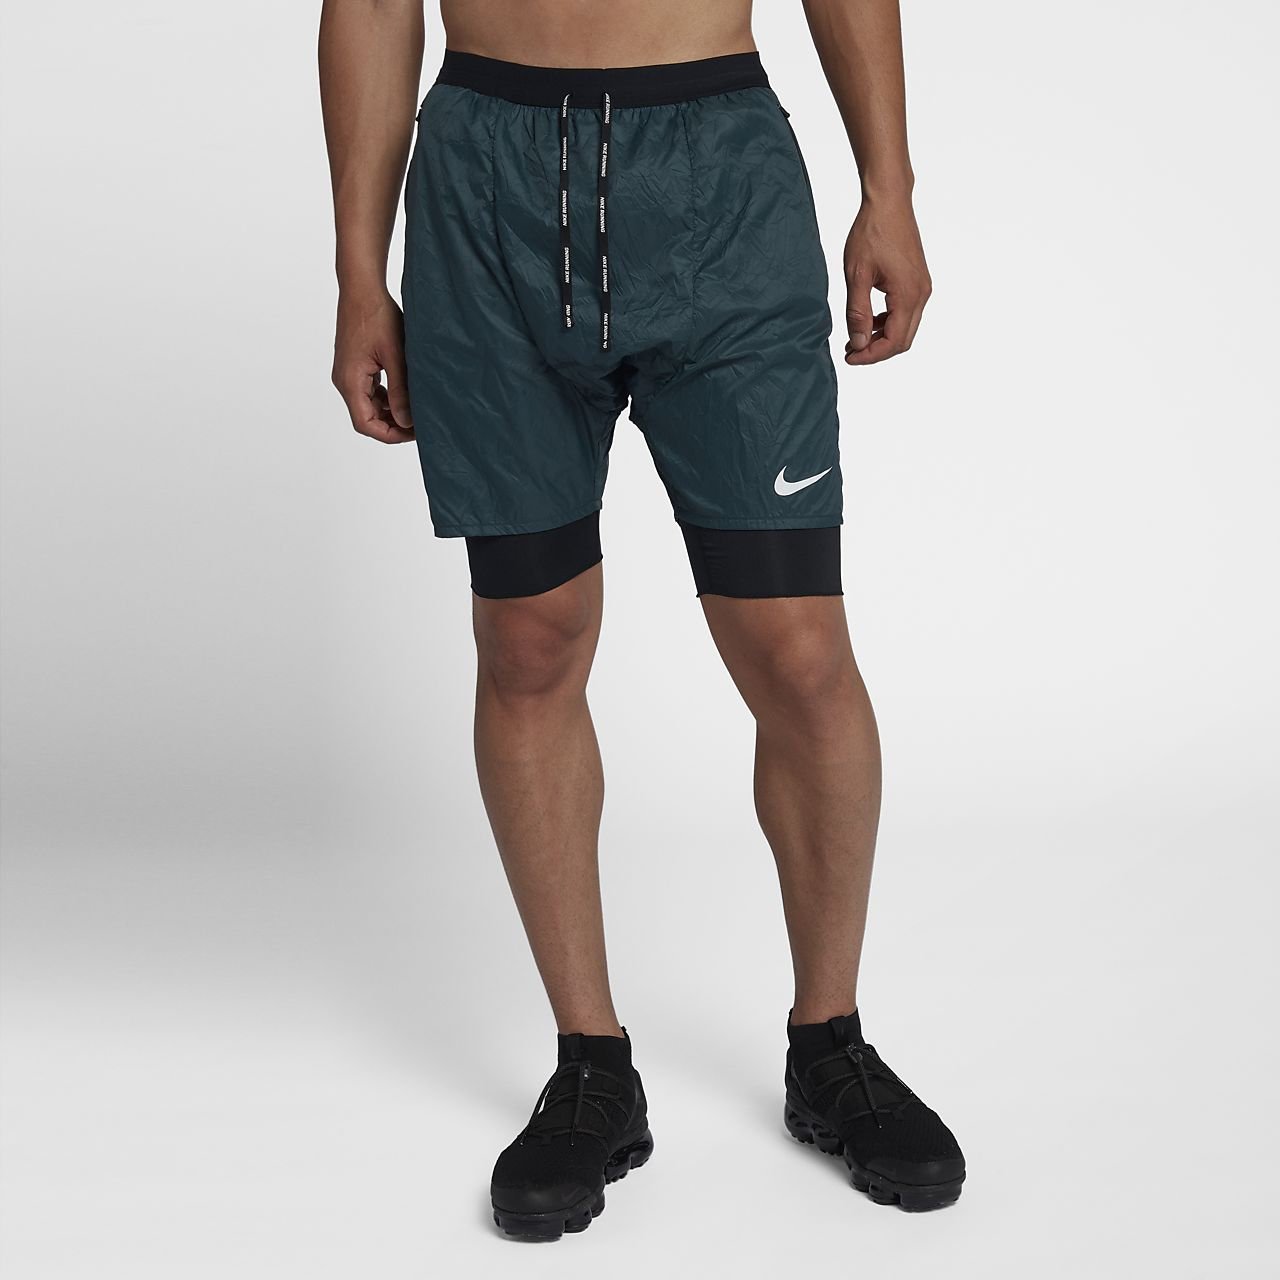 Nike Flex Stride Elevate Men's Running Shorts